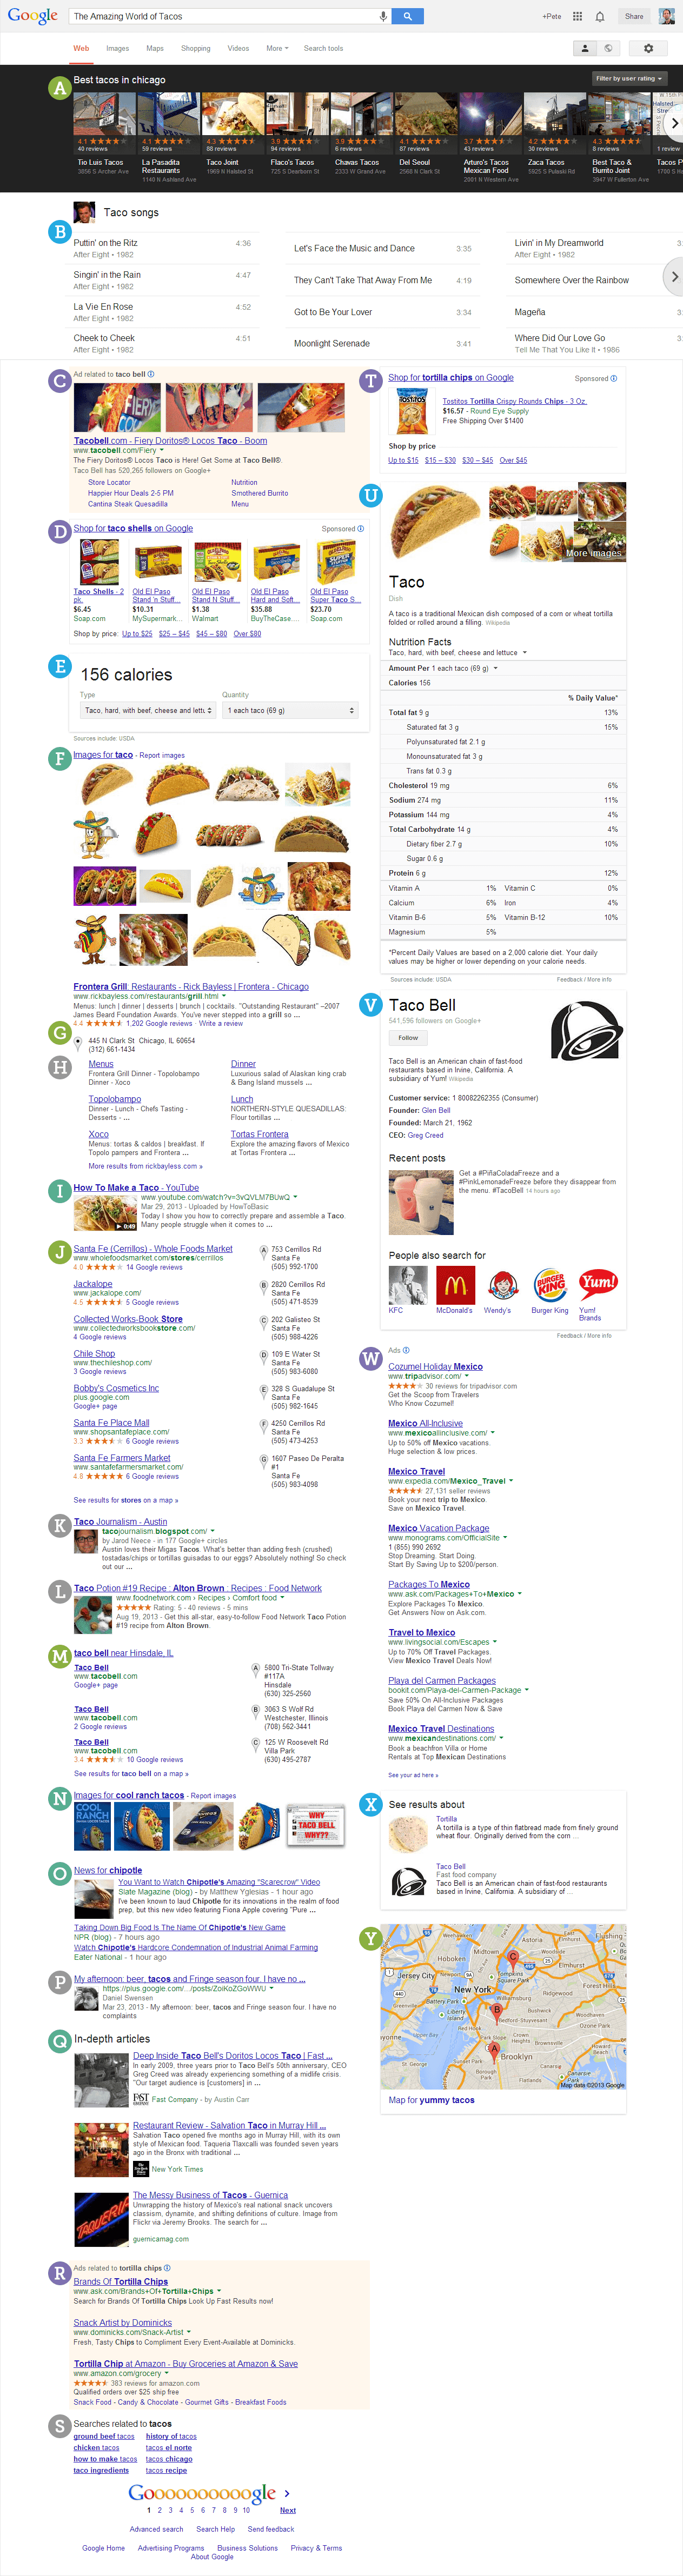 Google Results Page Lay-Out